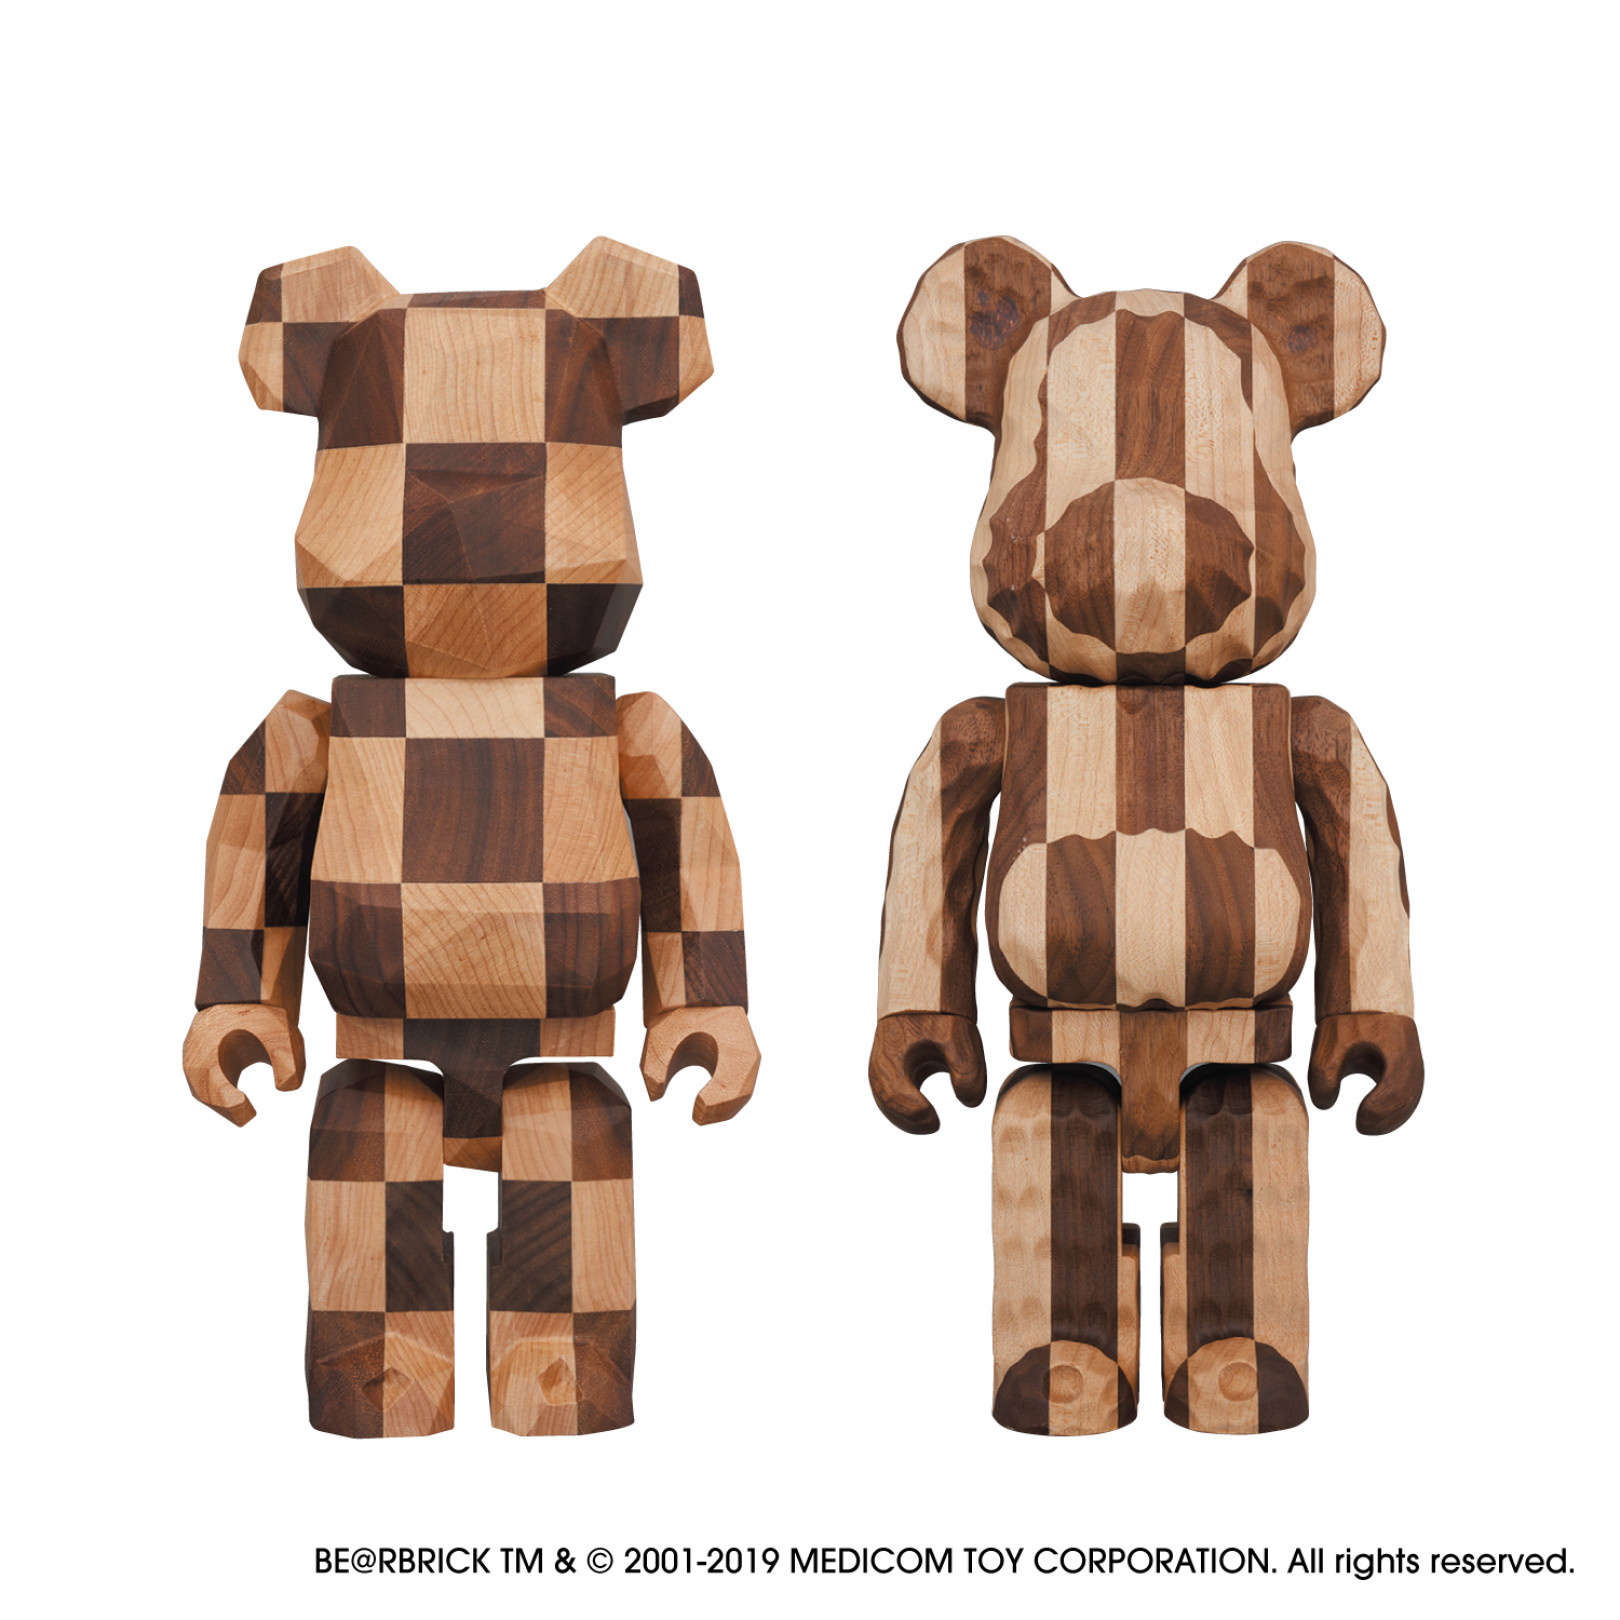 「BE@RBRICK カリモク fragmentdesign 400% polygon – CHESS/carved wooden - LONGITUDINAL CHESS」(各22万円)